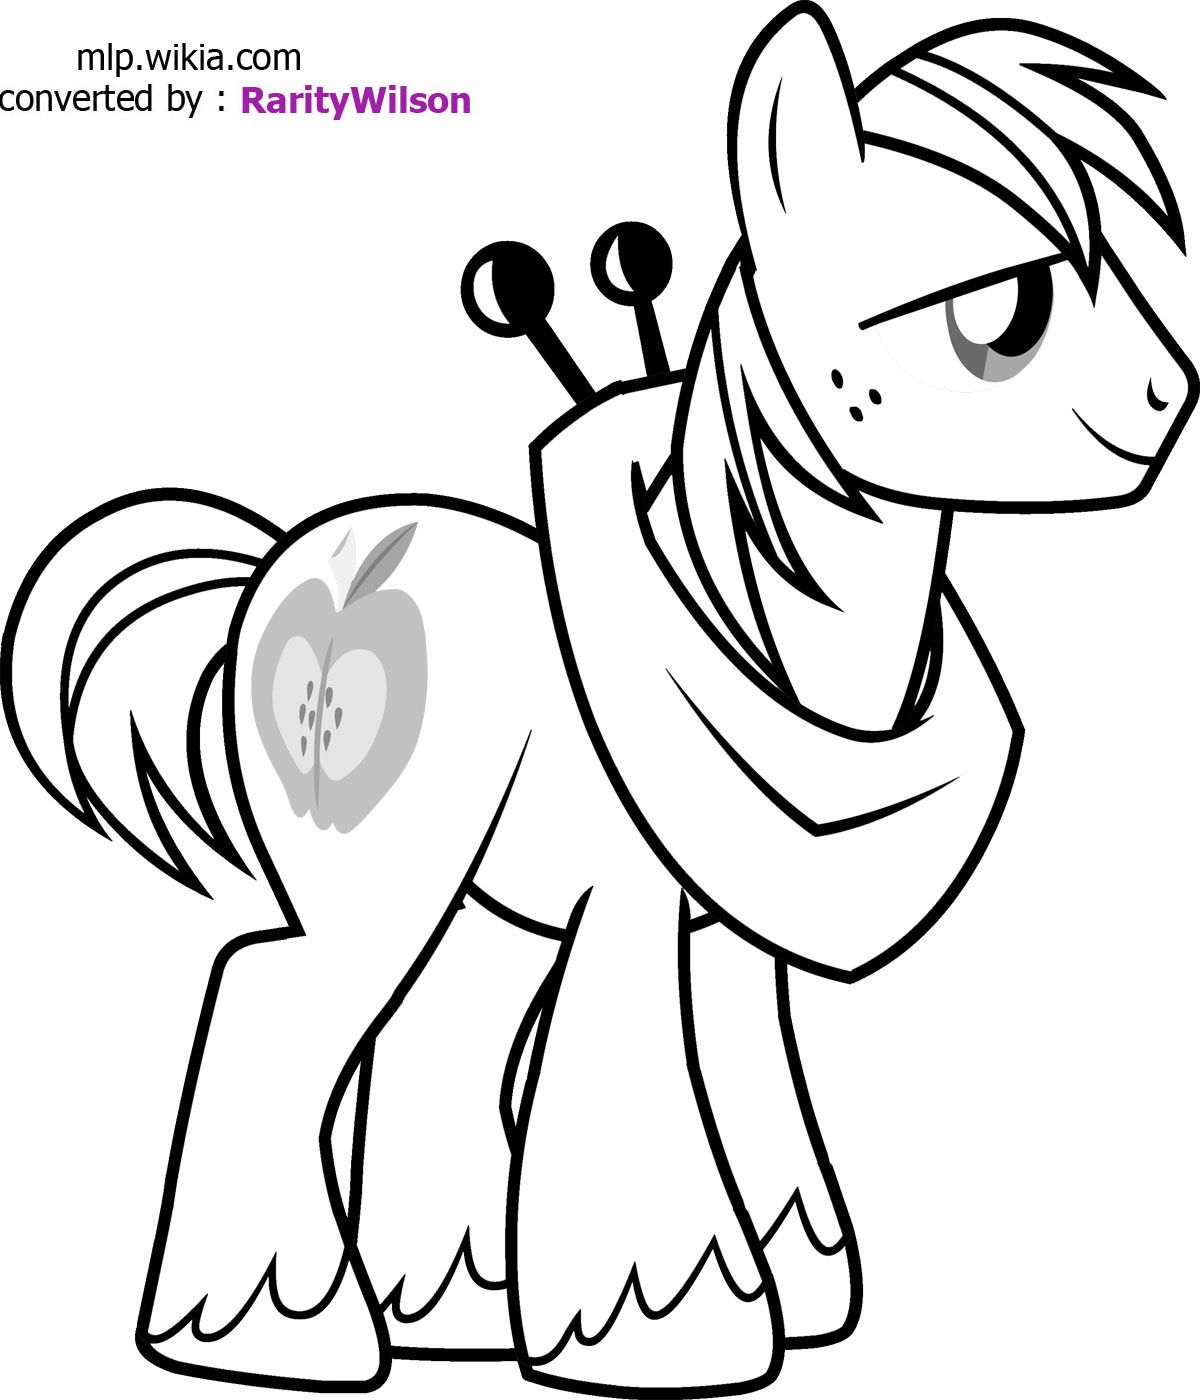 Coloring99 Com My Little Pony Coloring My Little Pony Printable Coloring Pages